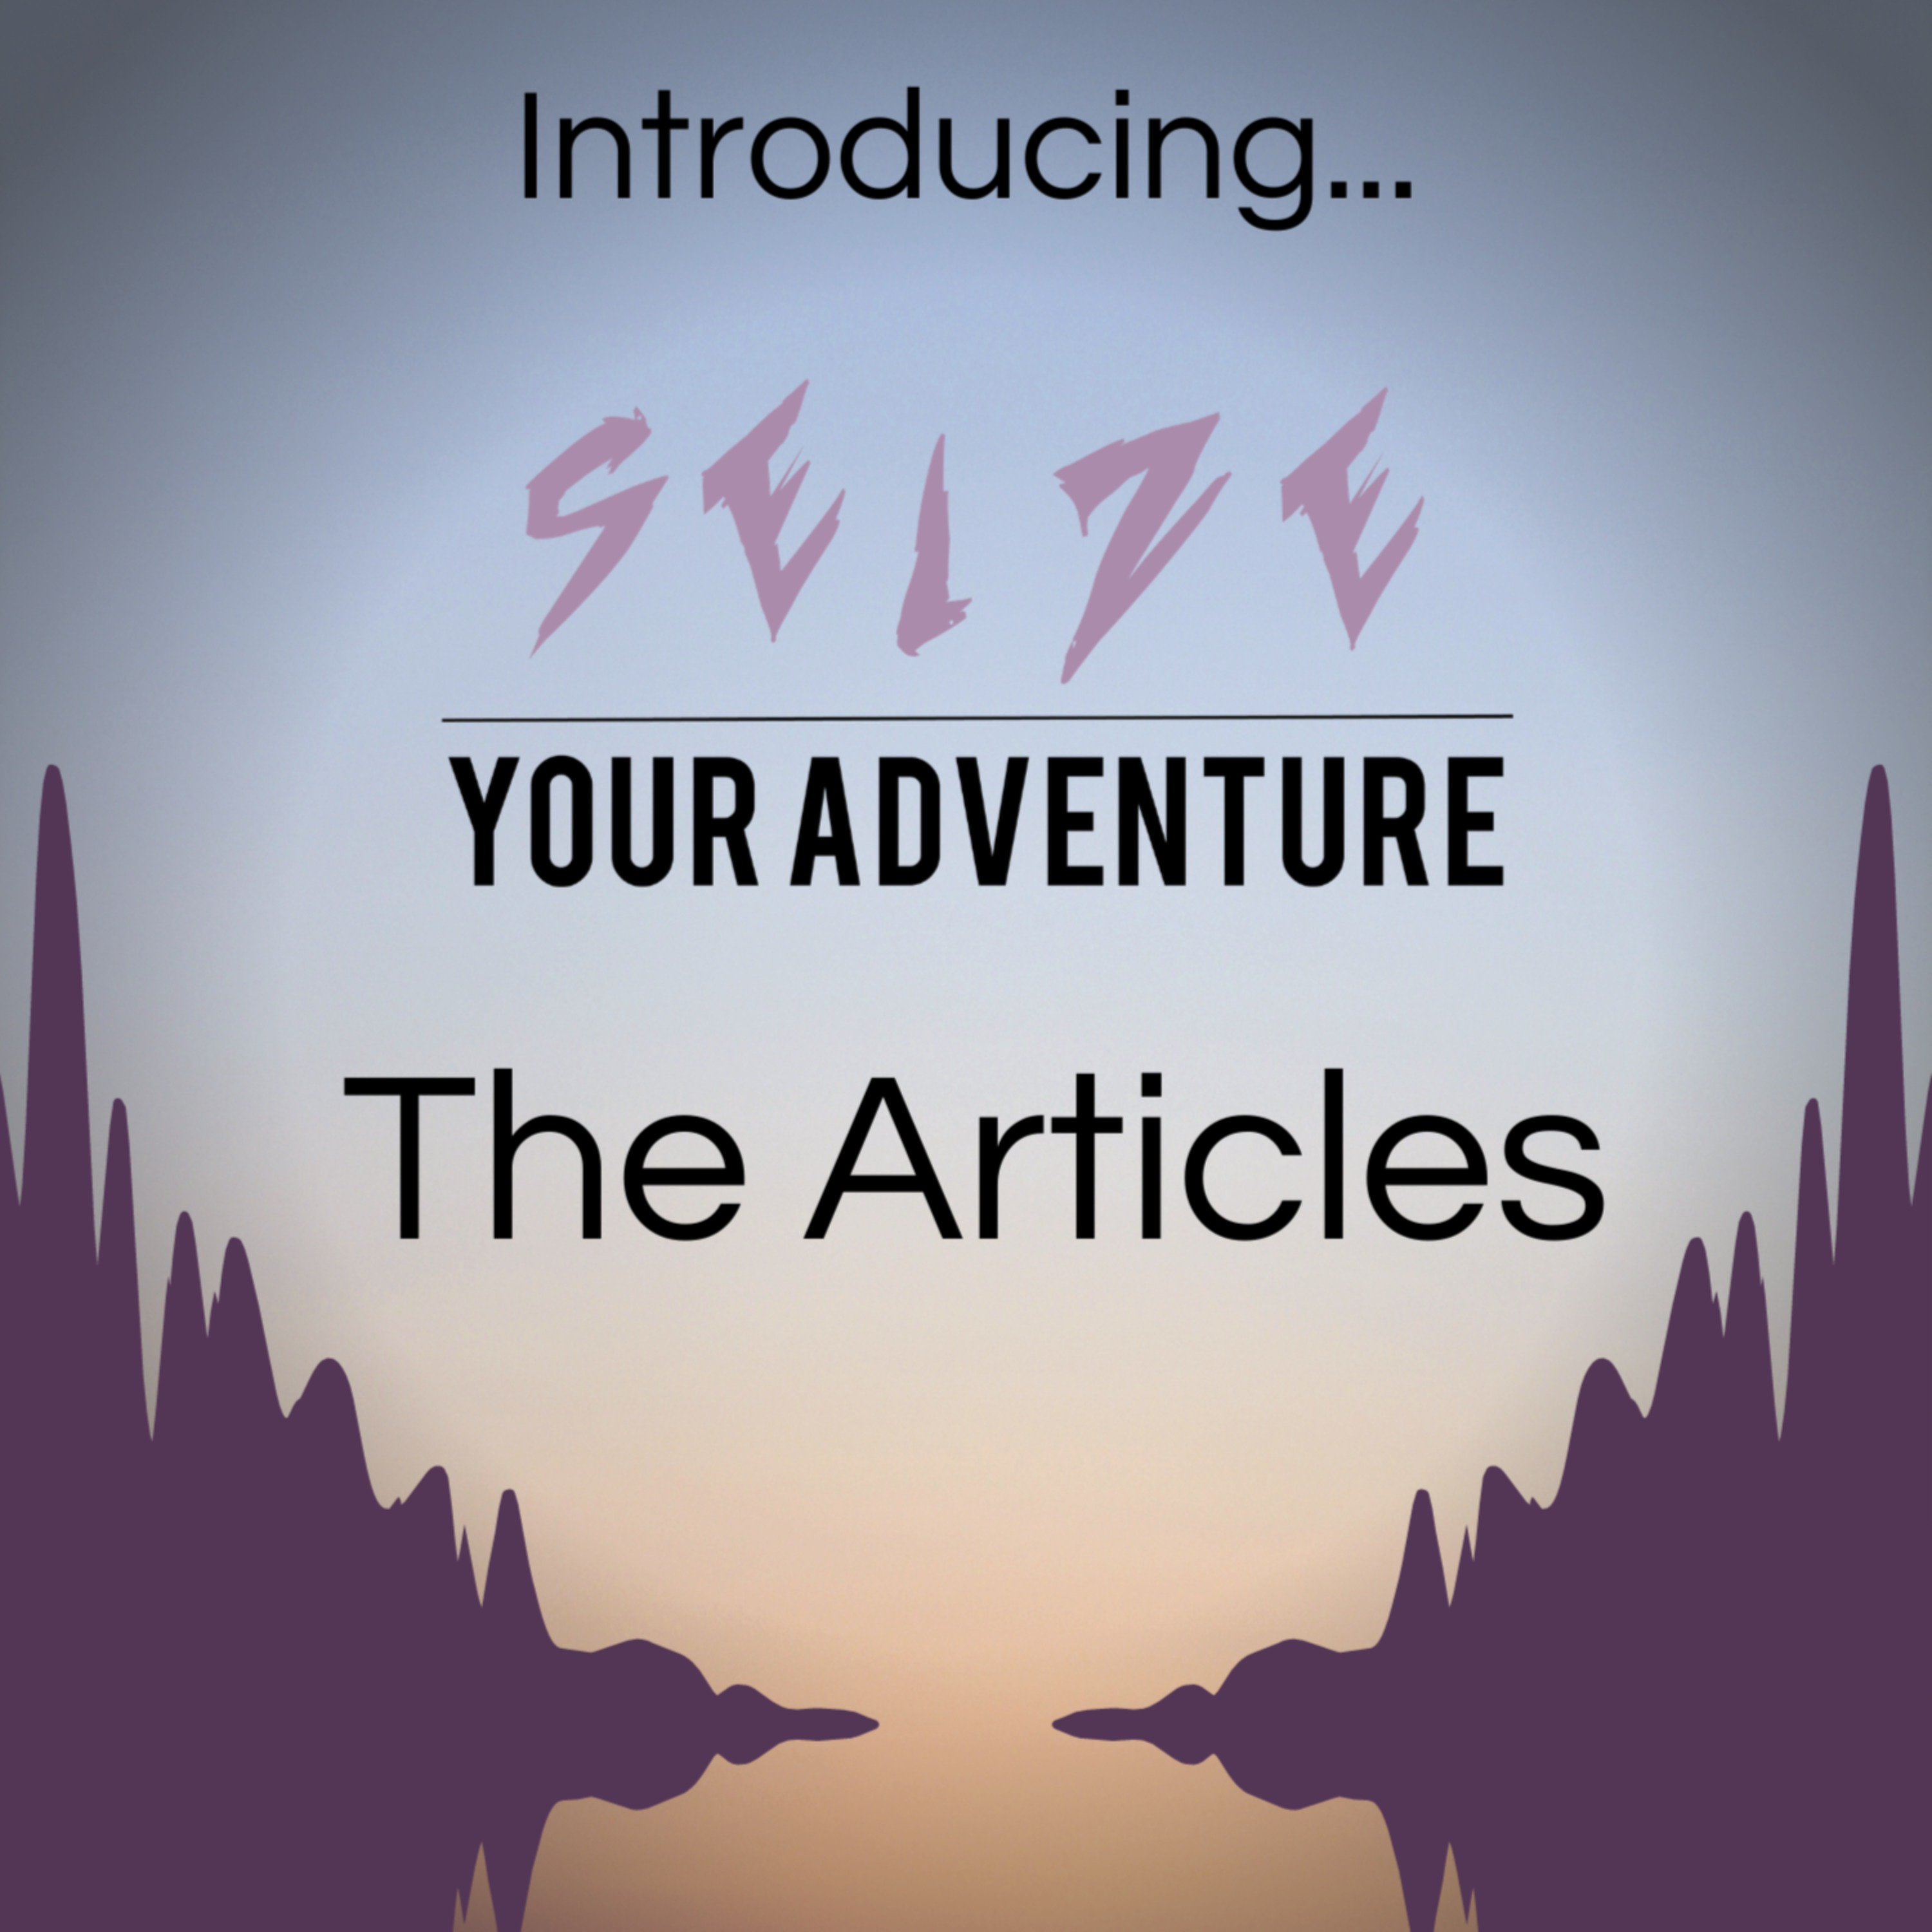 Introducing: The Articles